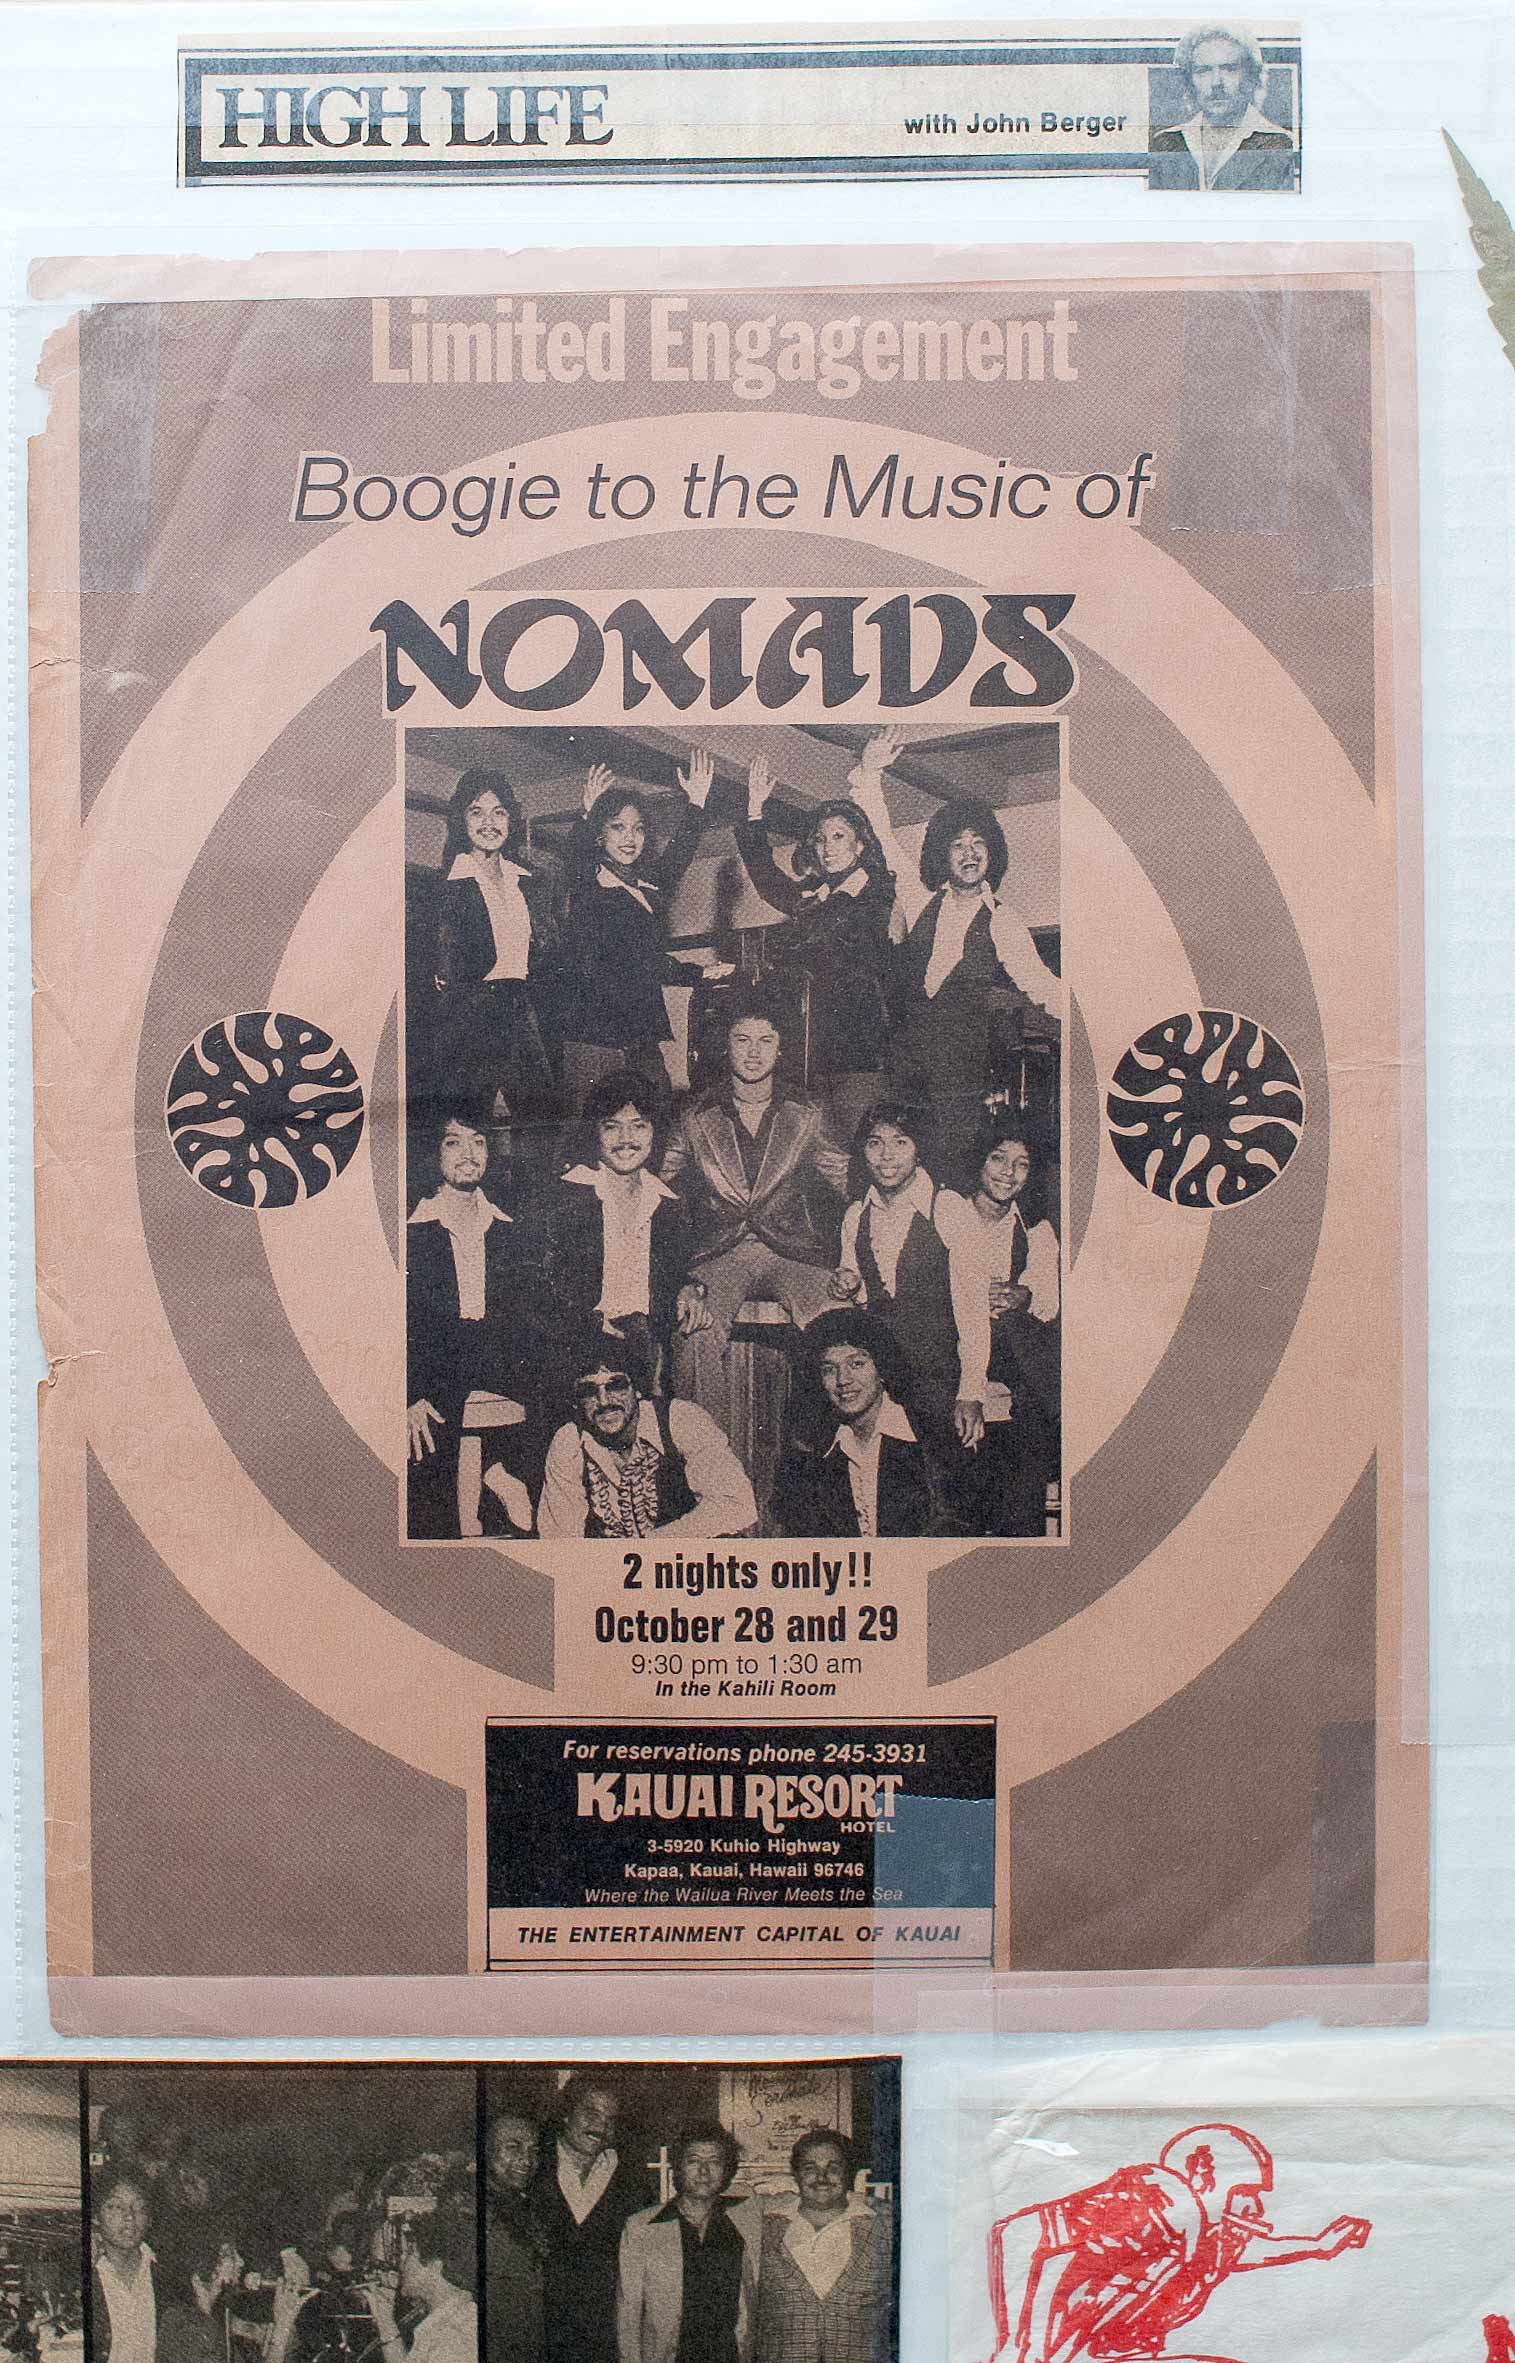 Nomads (Aura) Boogie Nights